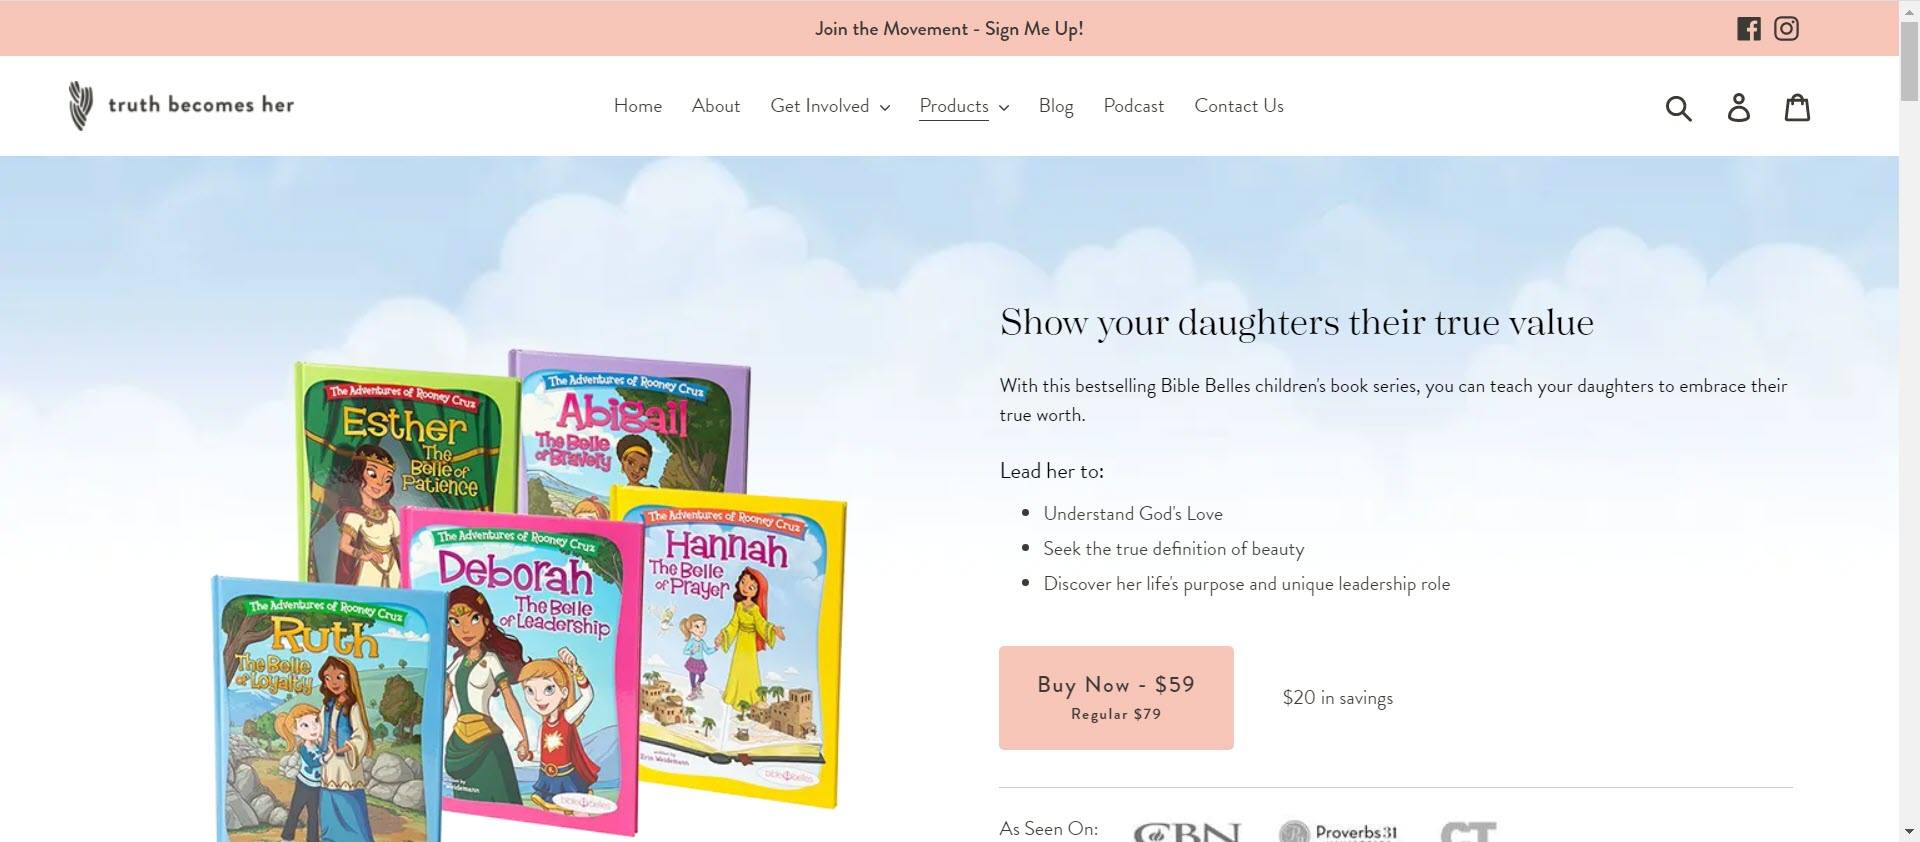 best christian affiliate programs - Bible Belles Home1